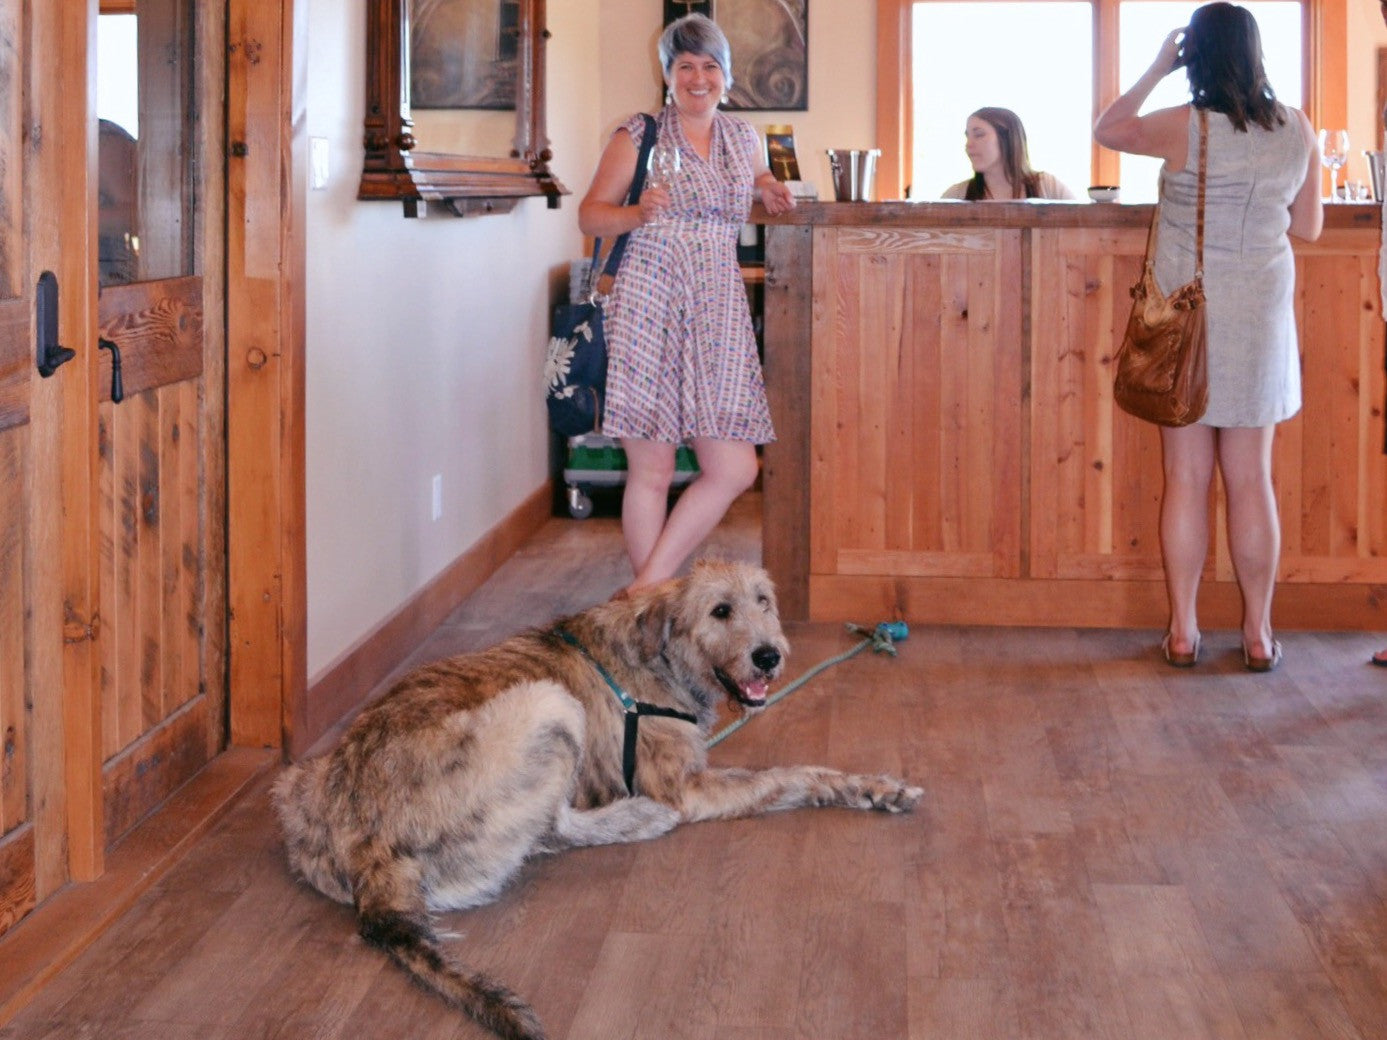 Cheers to wine tasting with your hound!